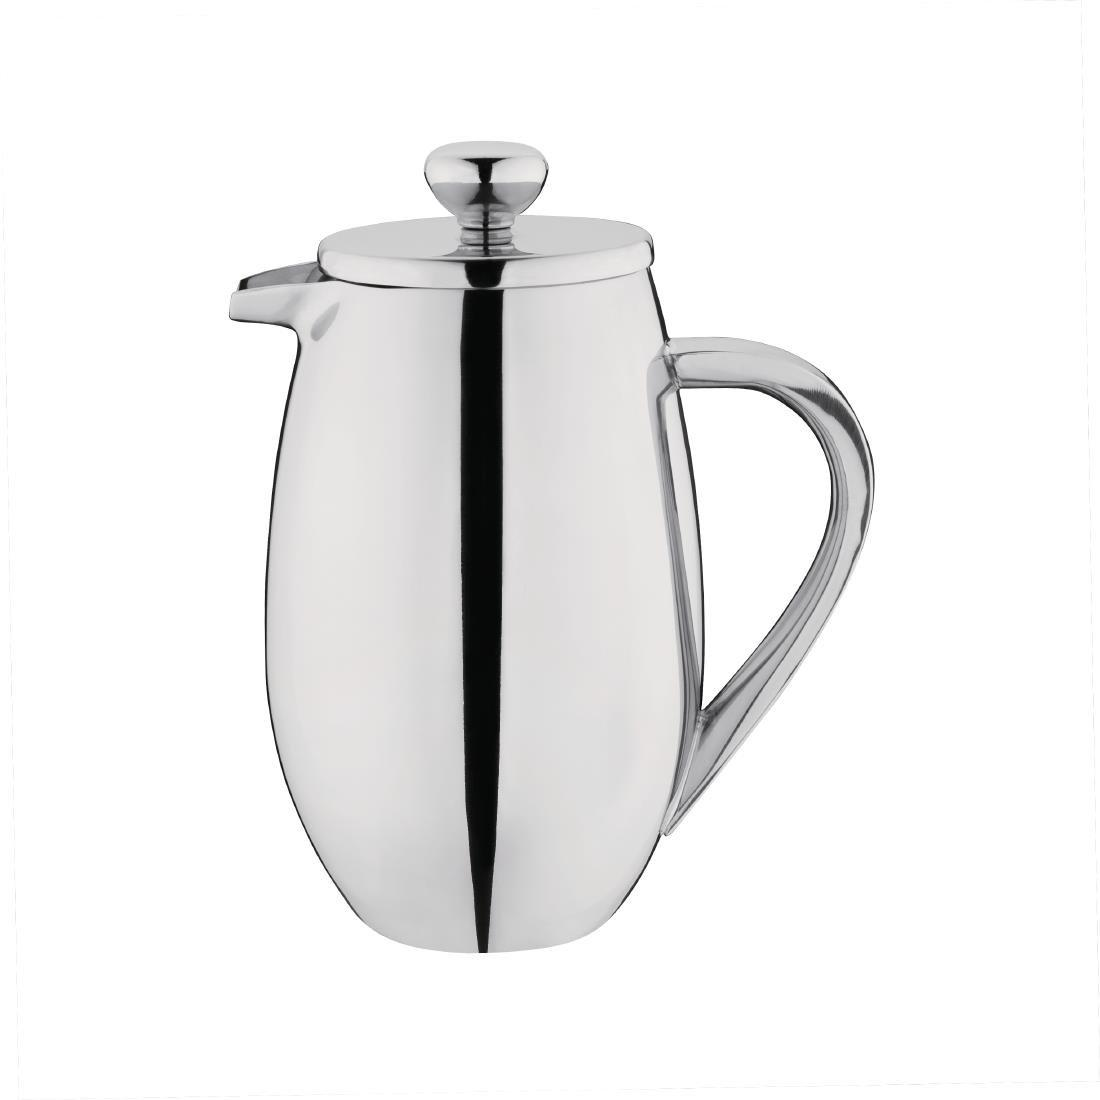 W836 - Stainless Steel Cafetiere